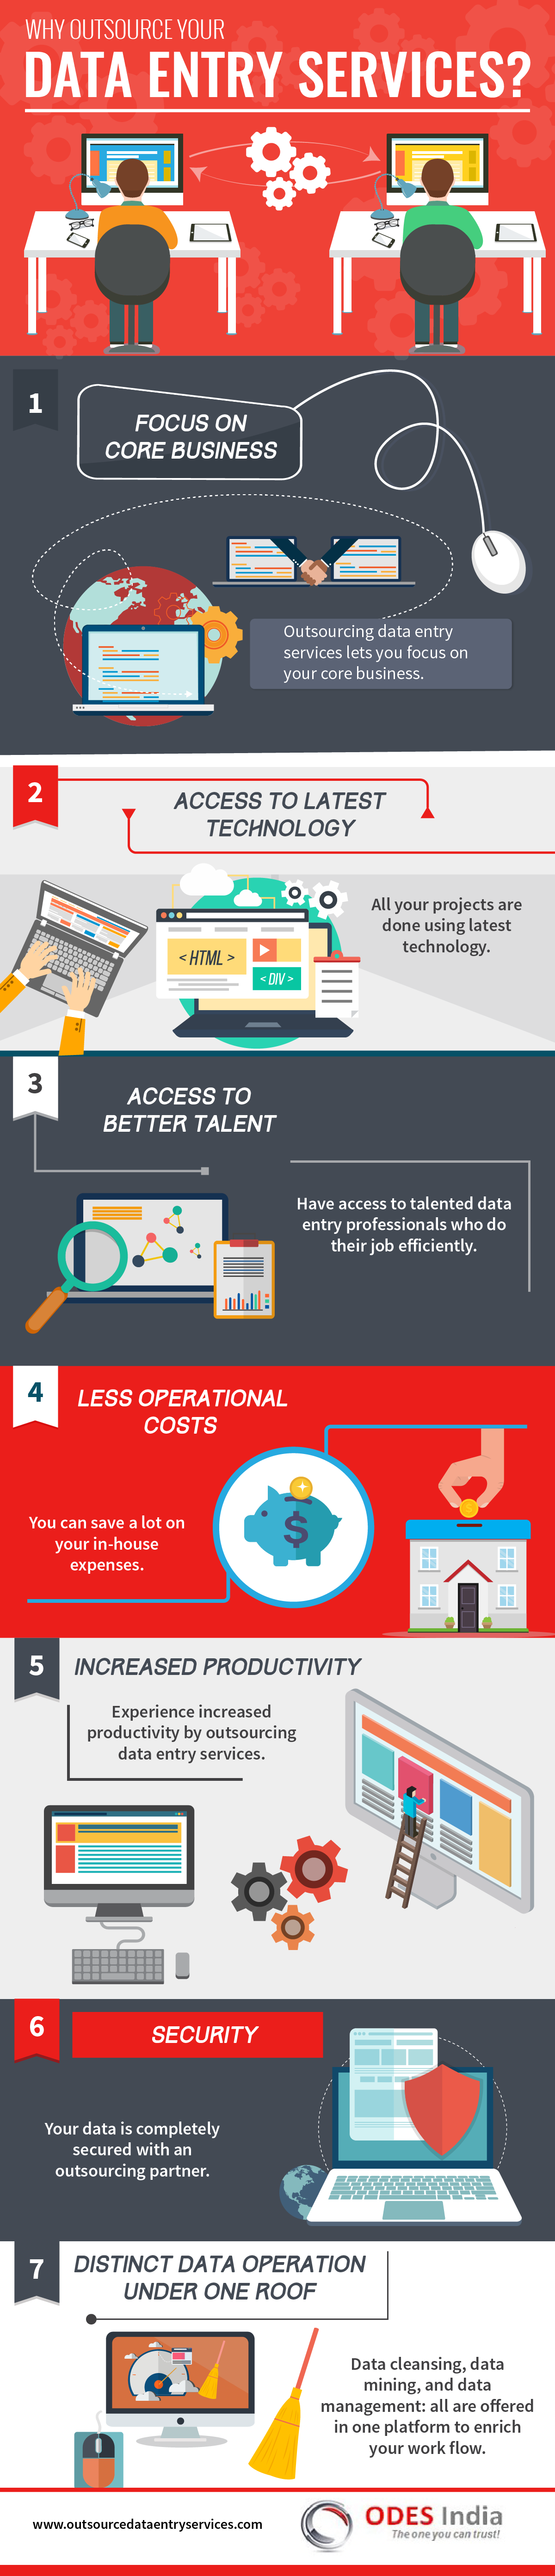 Importance of Outsourcing Data Entry Services